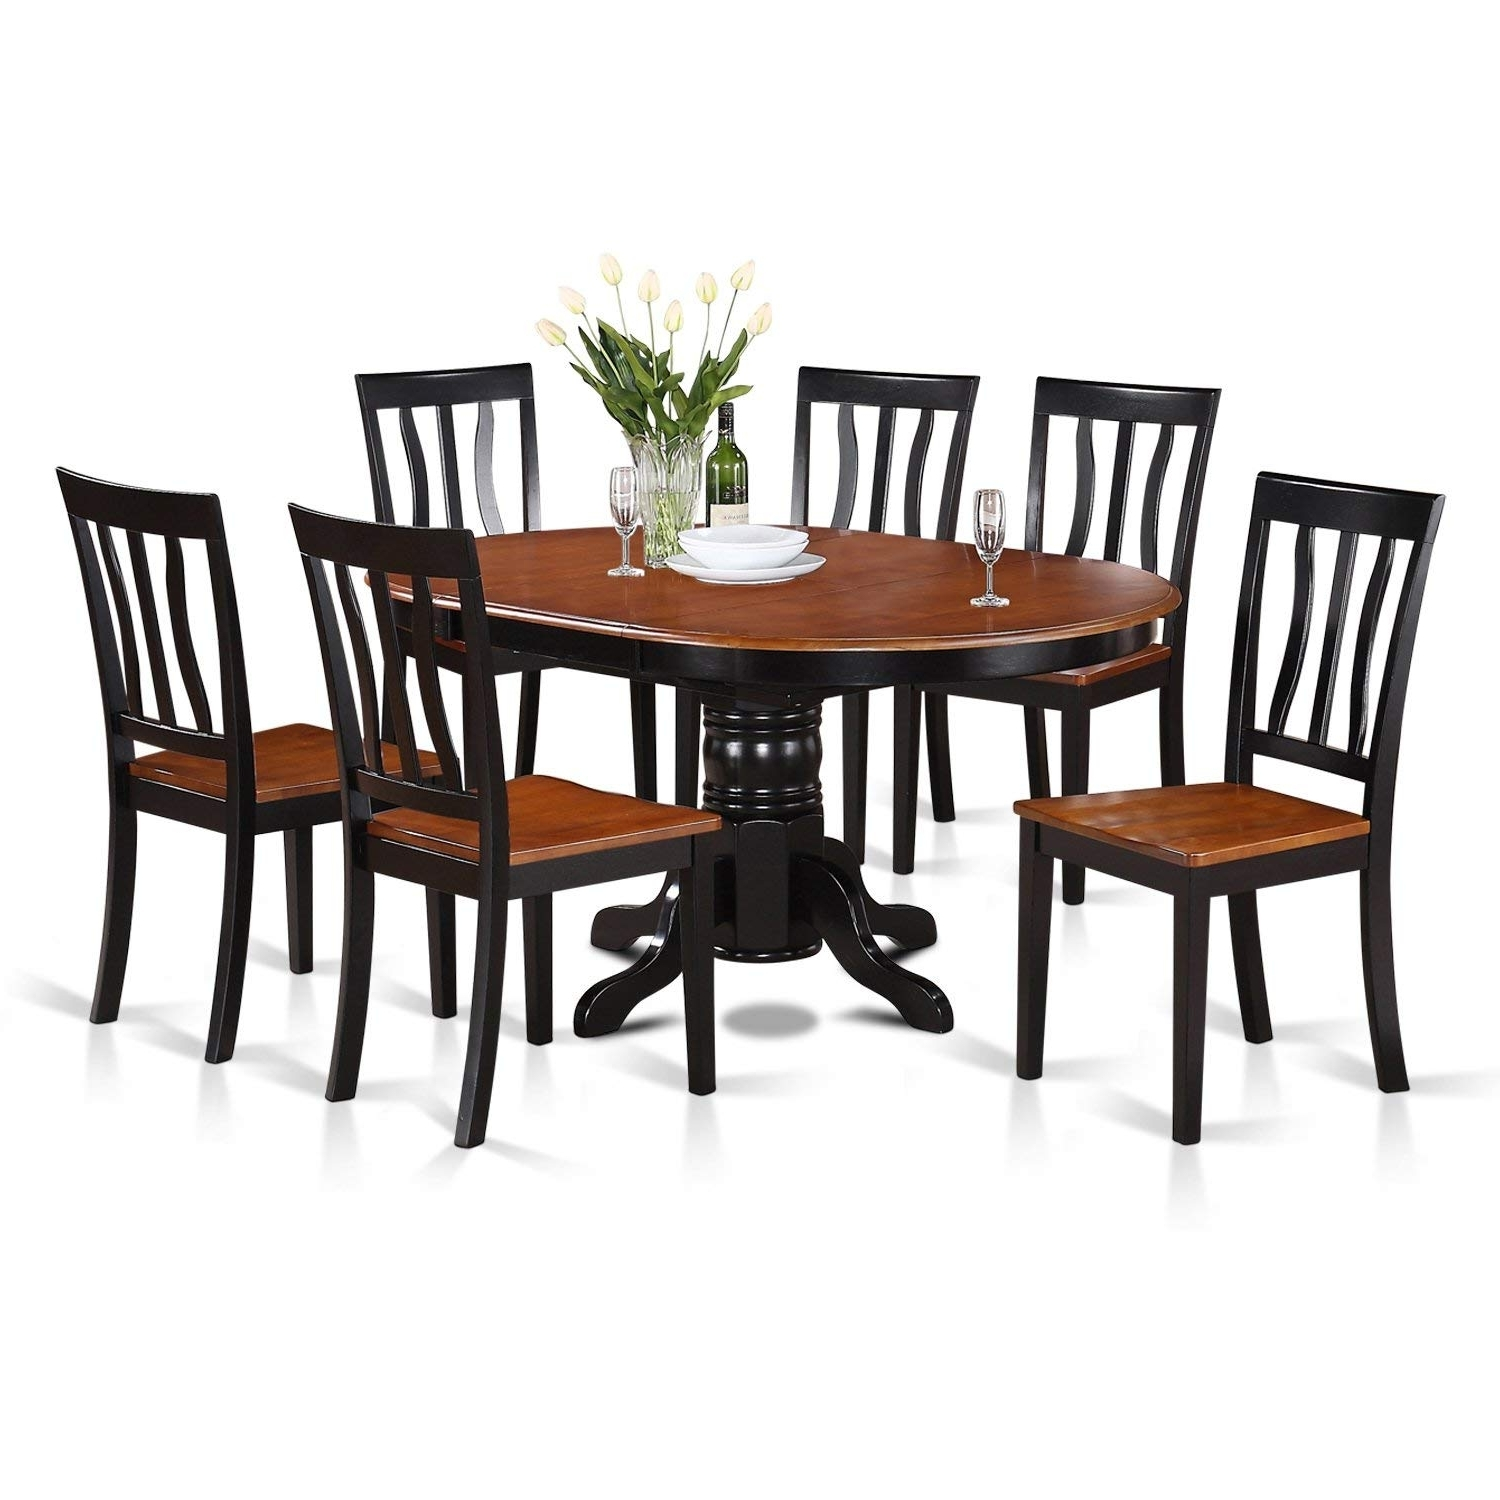 Favorite 6 Chair Dining Table Sets With Regard To Amazon: East West Furniture Avat7 Blk W 7 Piece Dining Table Set (View 12 of 25)